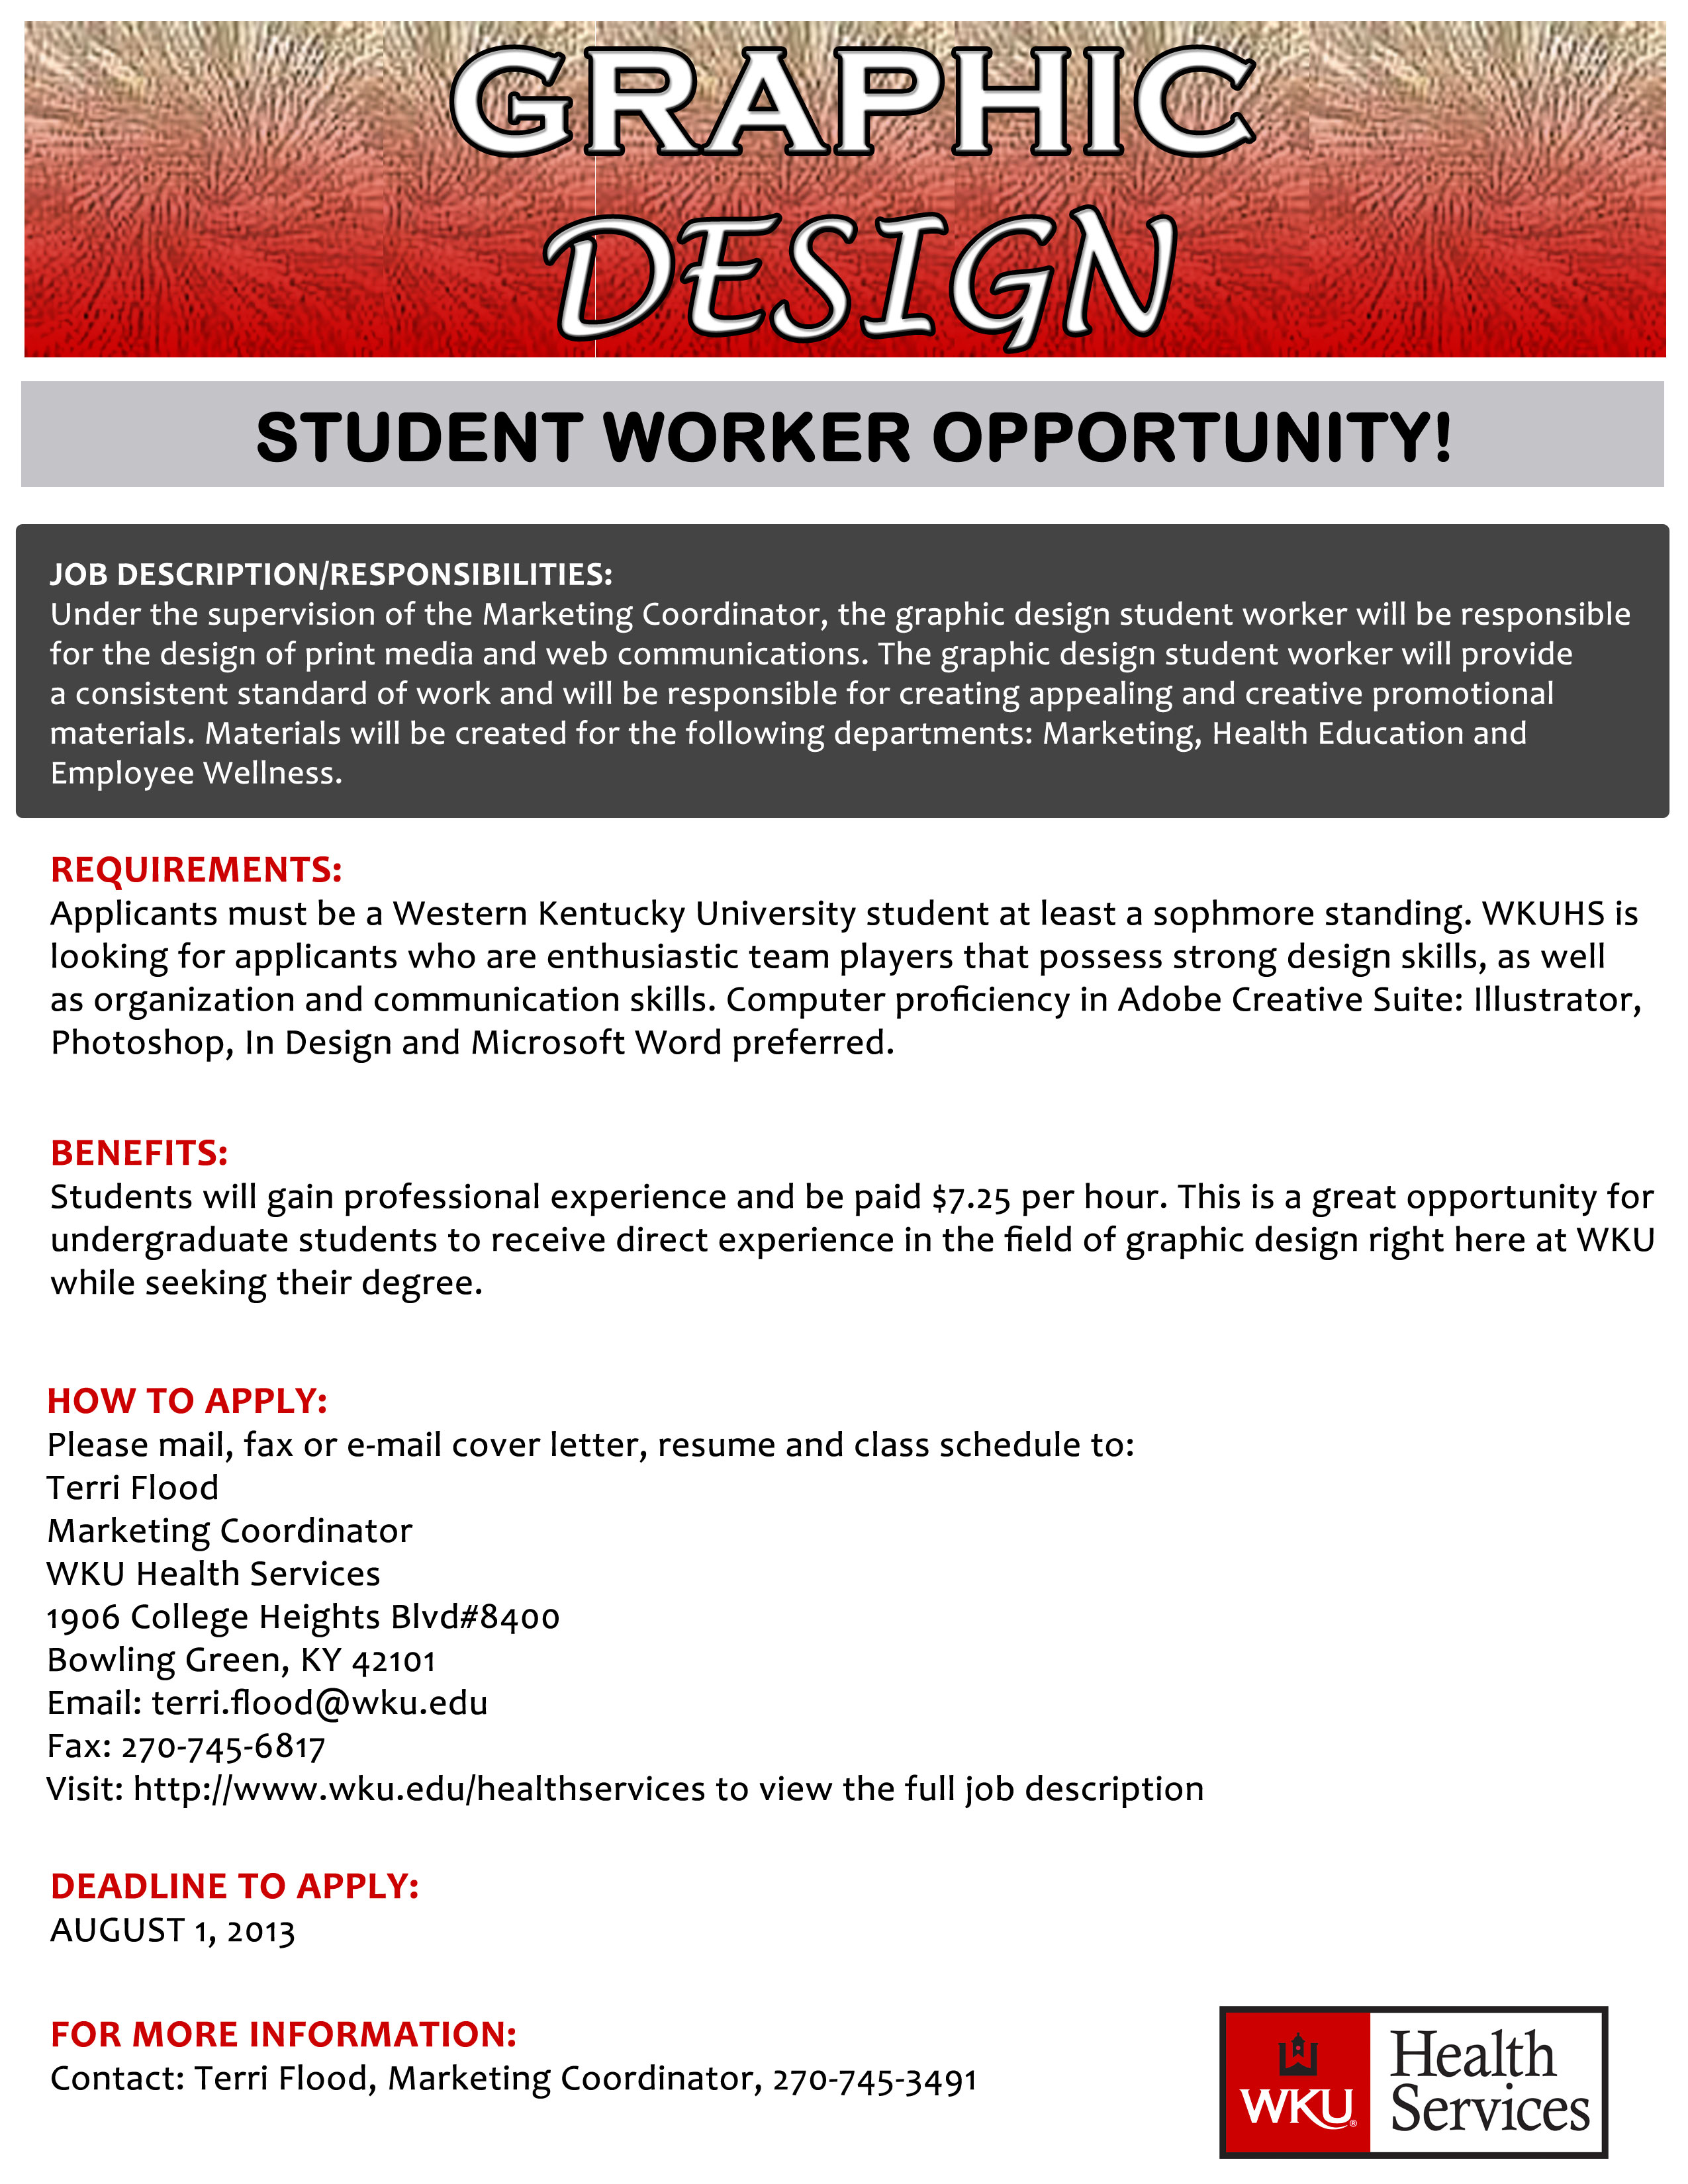 Graphic Design Student Worker Opportunity